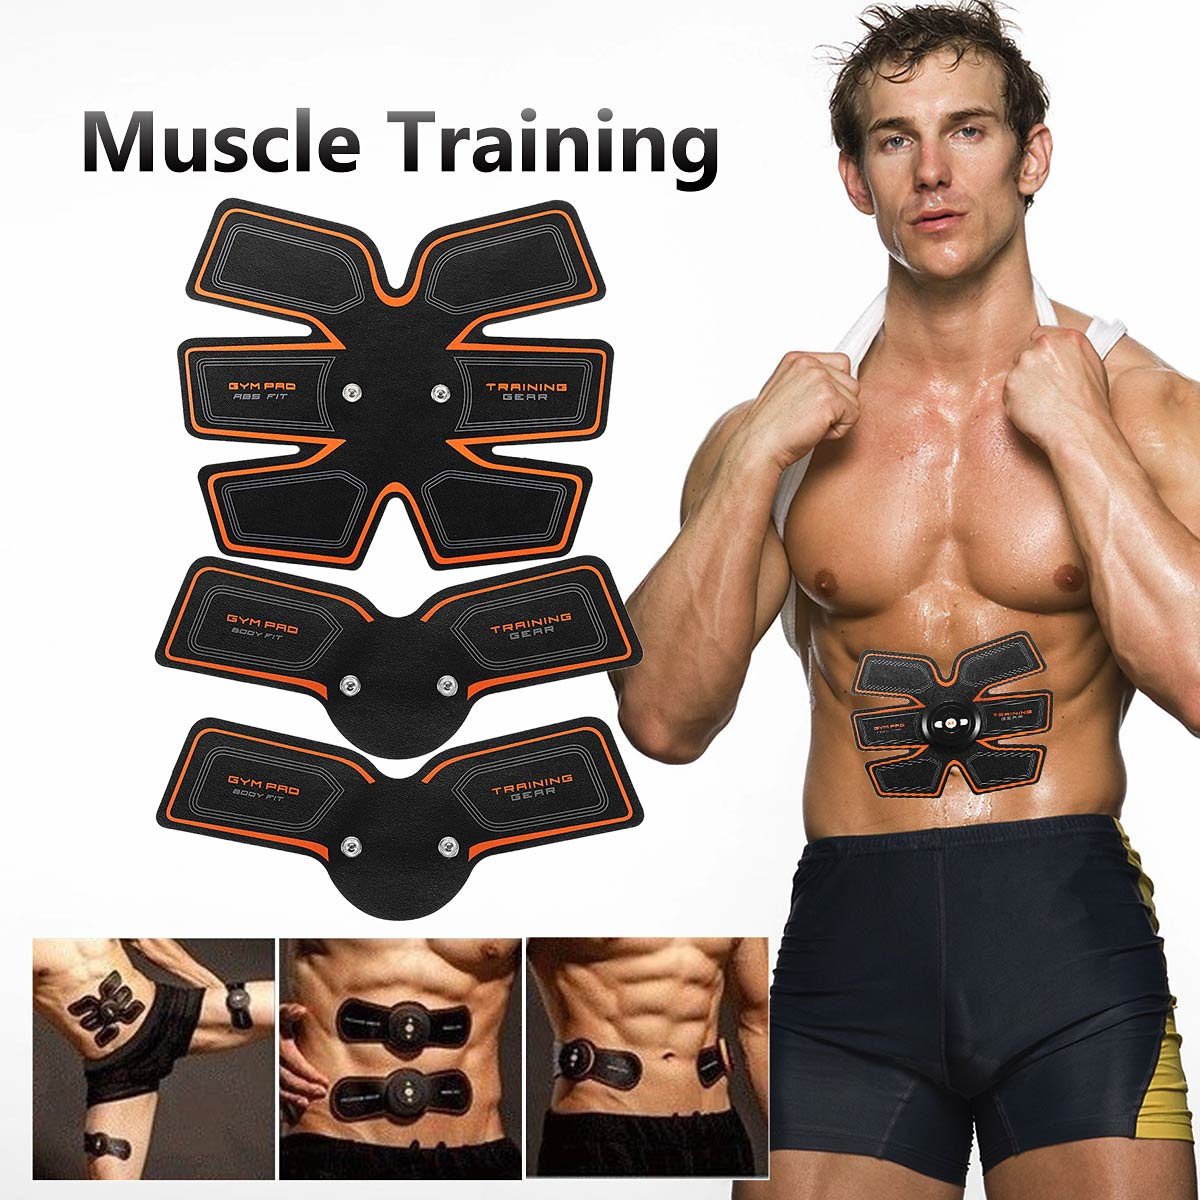 Smart EMS Muscle ABS Fit Training Gear Abdominal Body Home Exercise Shape Fitness Set Abs Fit Muscles Intensive Training